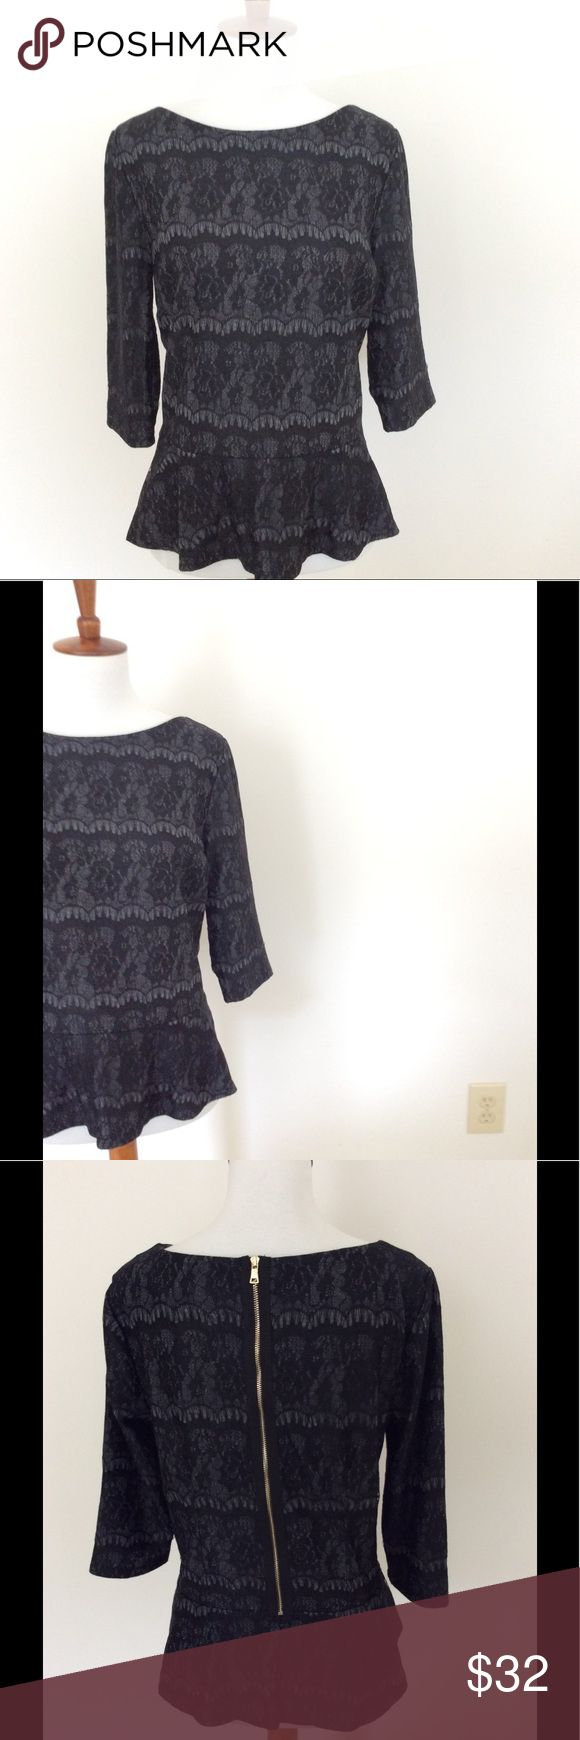 Ann Taylor Long Sleeve Knit Top With Lace Overlay This long sleeve, knit peplum top with lace overlay and exposed zipper by Ann Taylor pairs well with skirts, jeans, and dress slacks. This versatile top is appropriate for work days and weekends. Great condition. Medium petite. Ann Taylor Tops